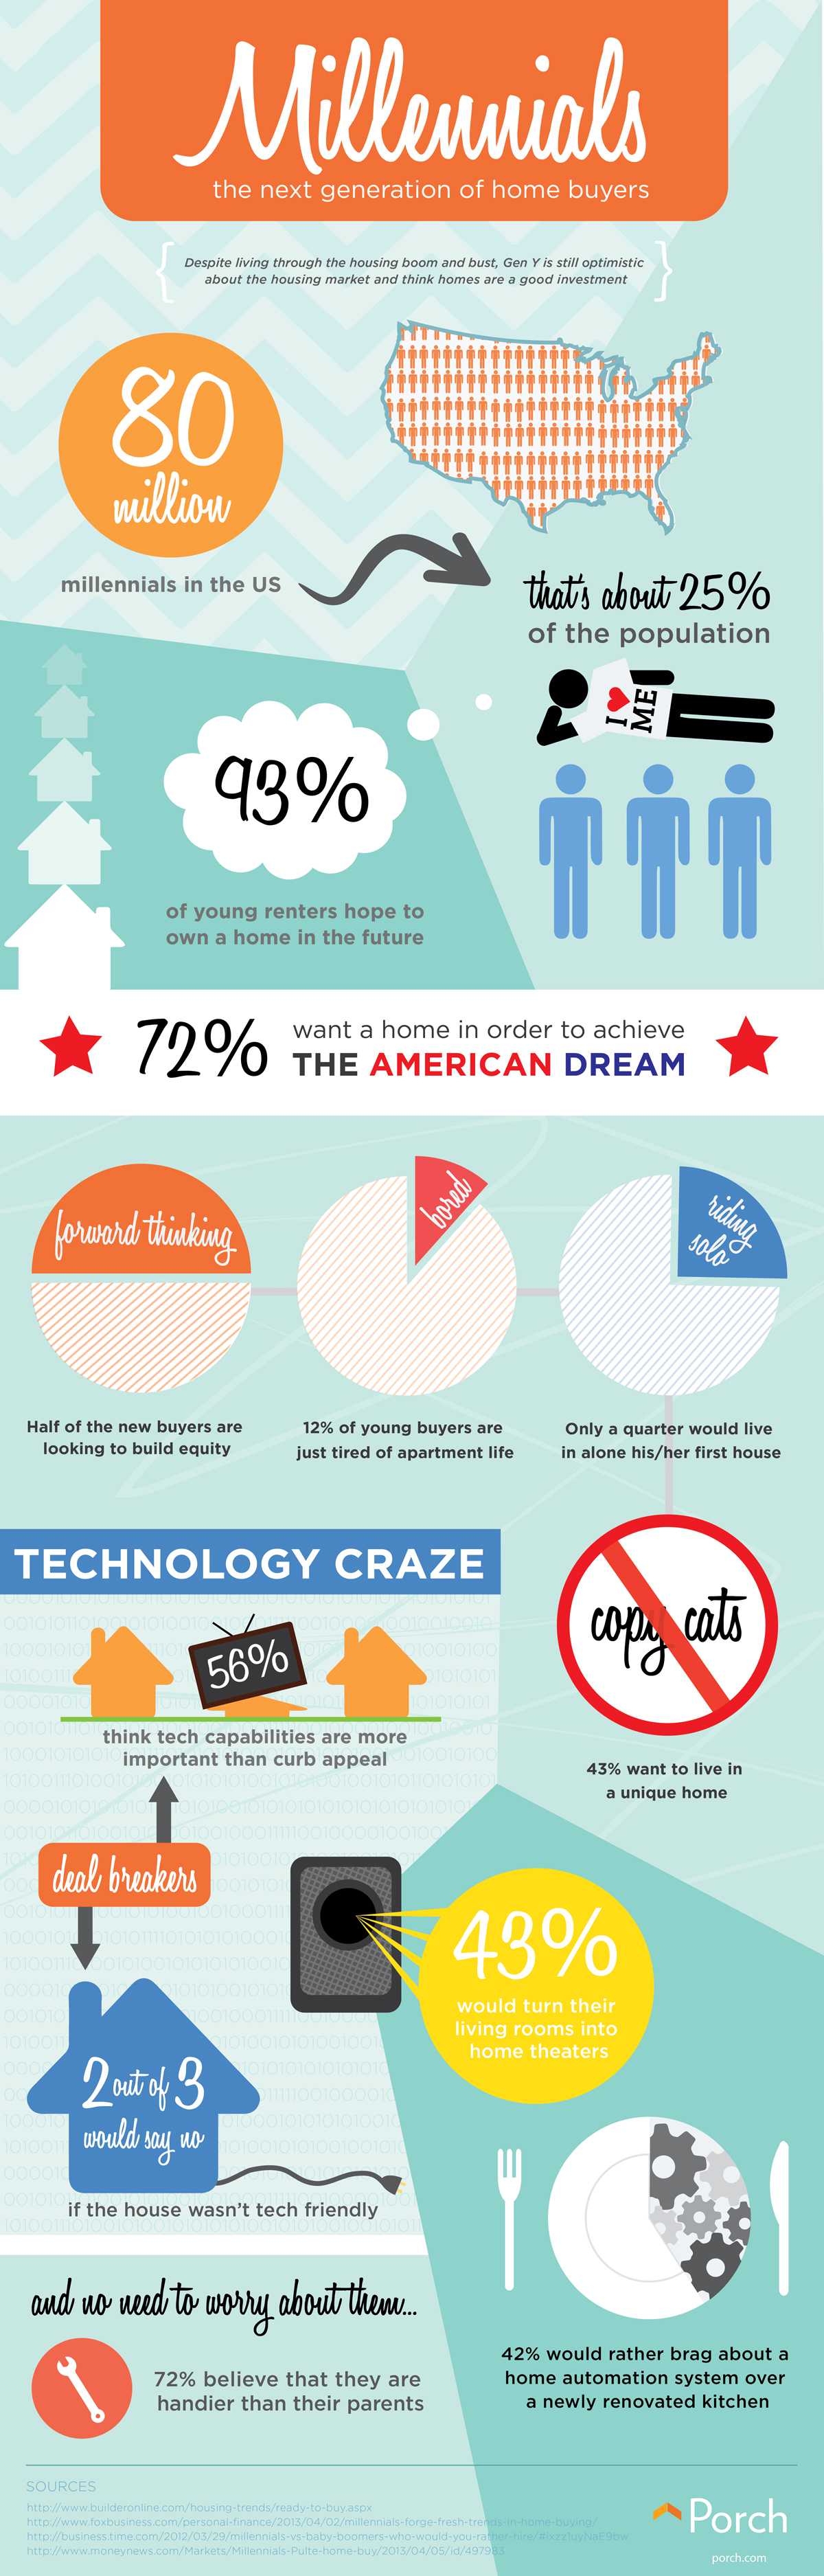 Millennials and Home Buying Trends